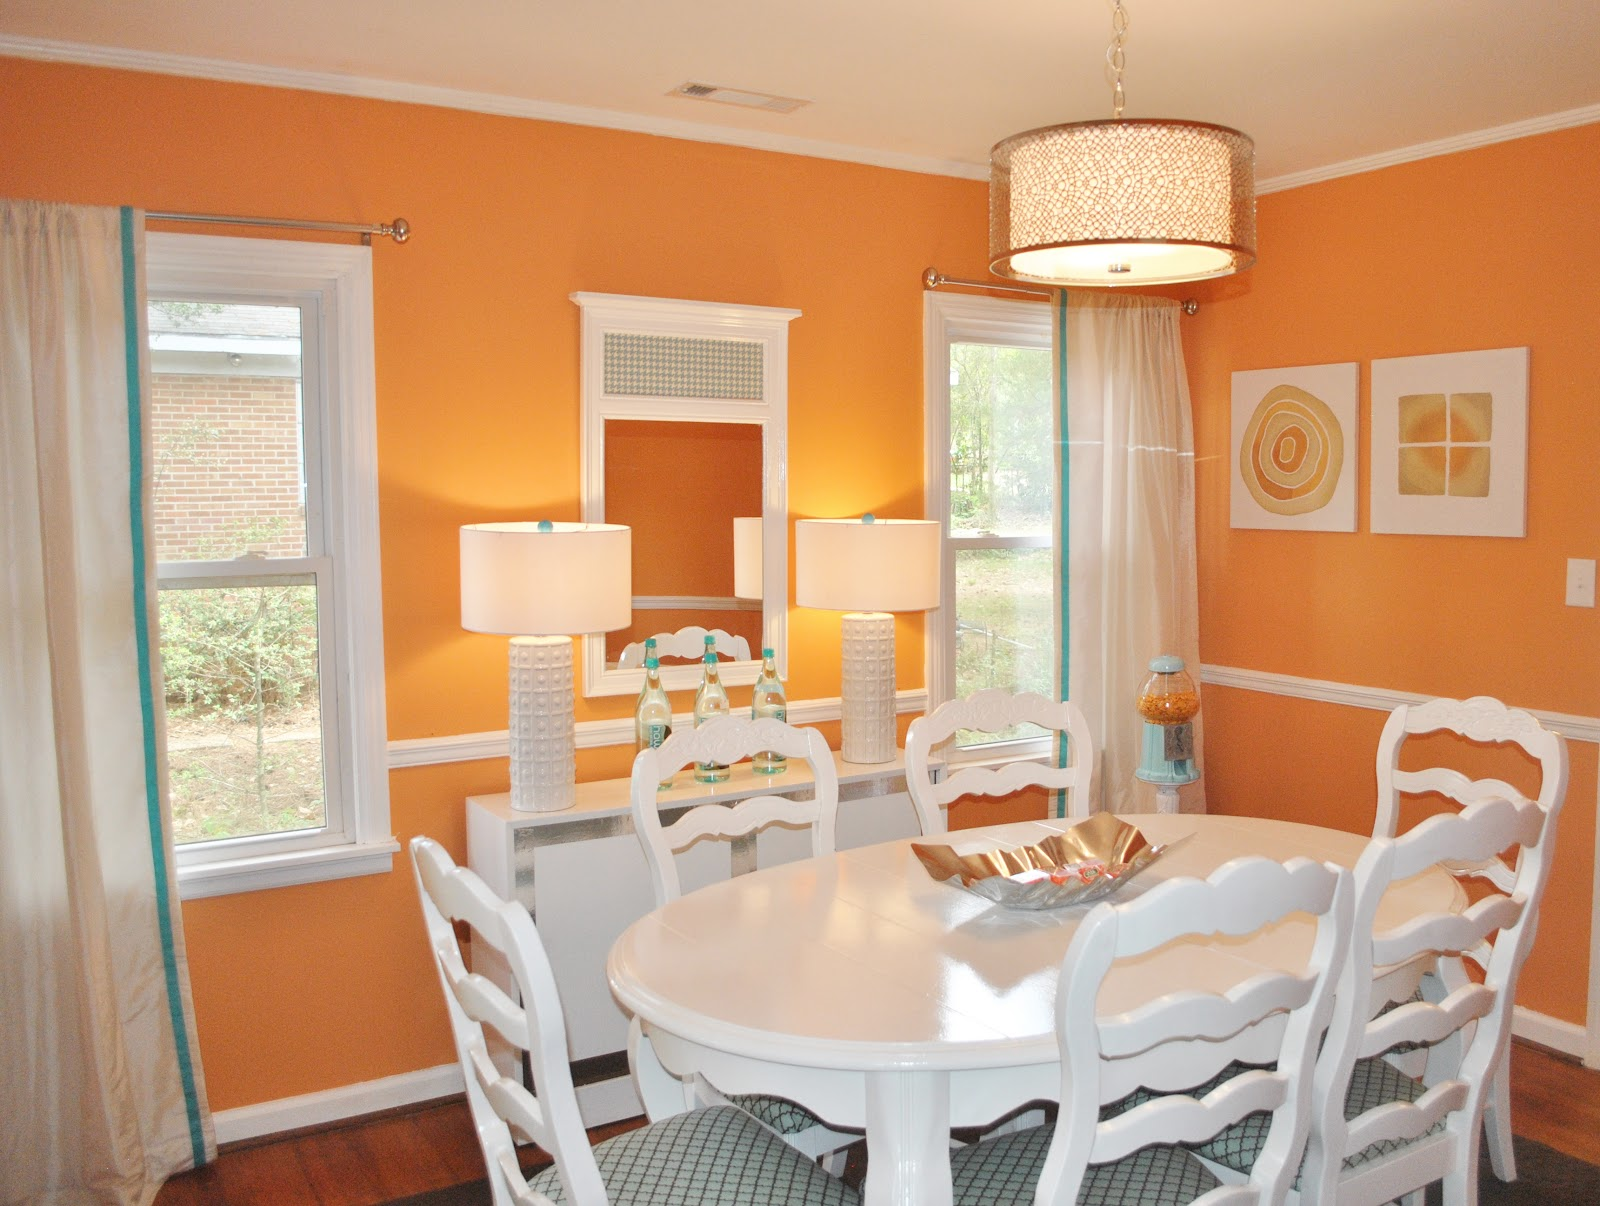 Bright Orange Dining Room Also Appears In The Pictures Below. Wooden Dining  Table And Chairs Combine With Chandelier And Red Rose On The Table Makes  This ...